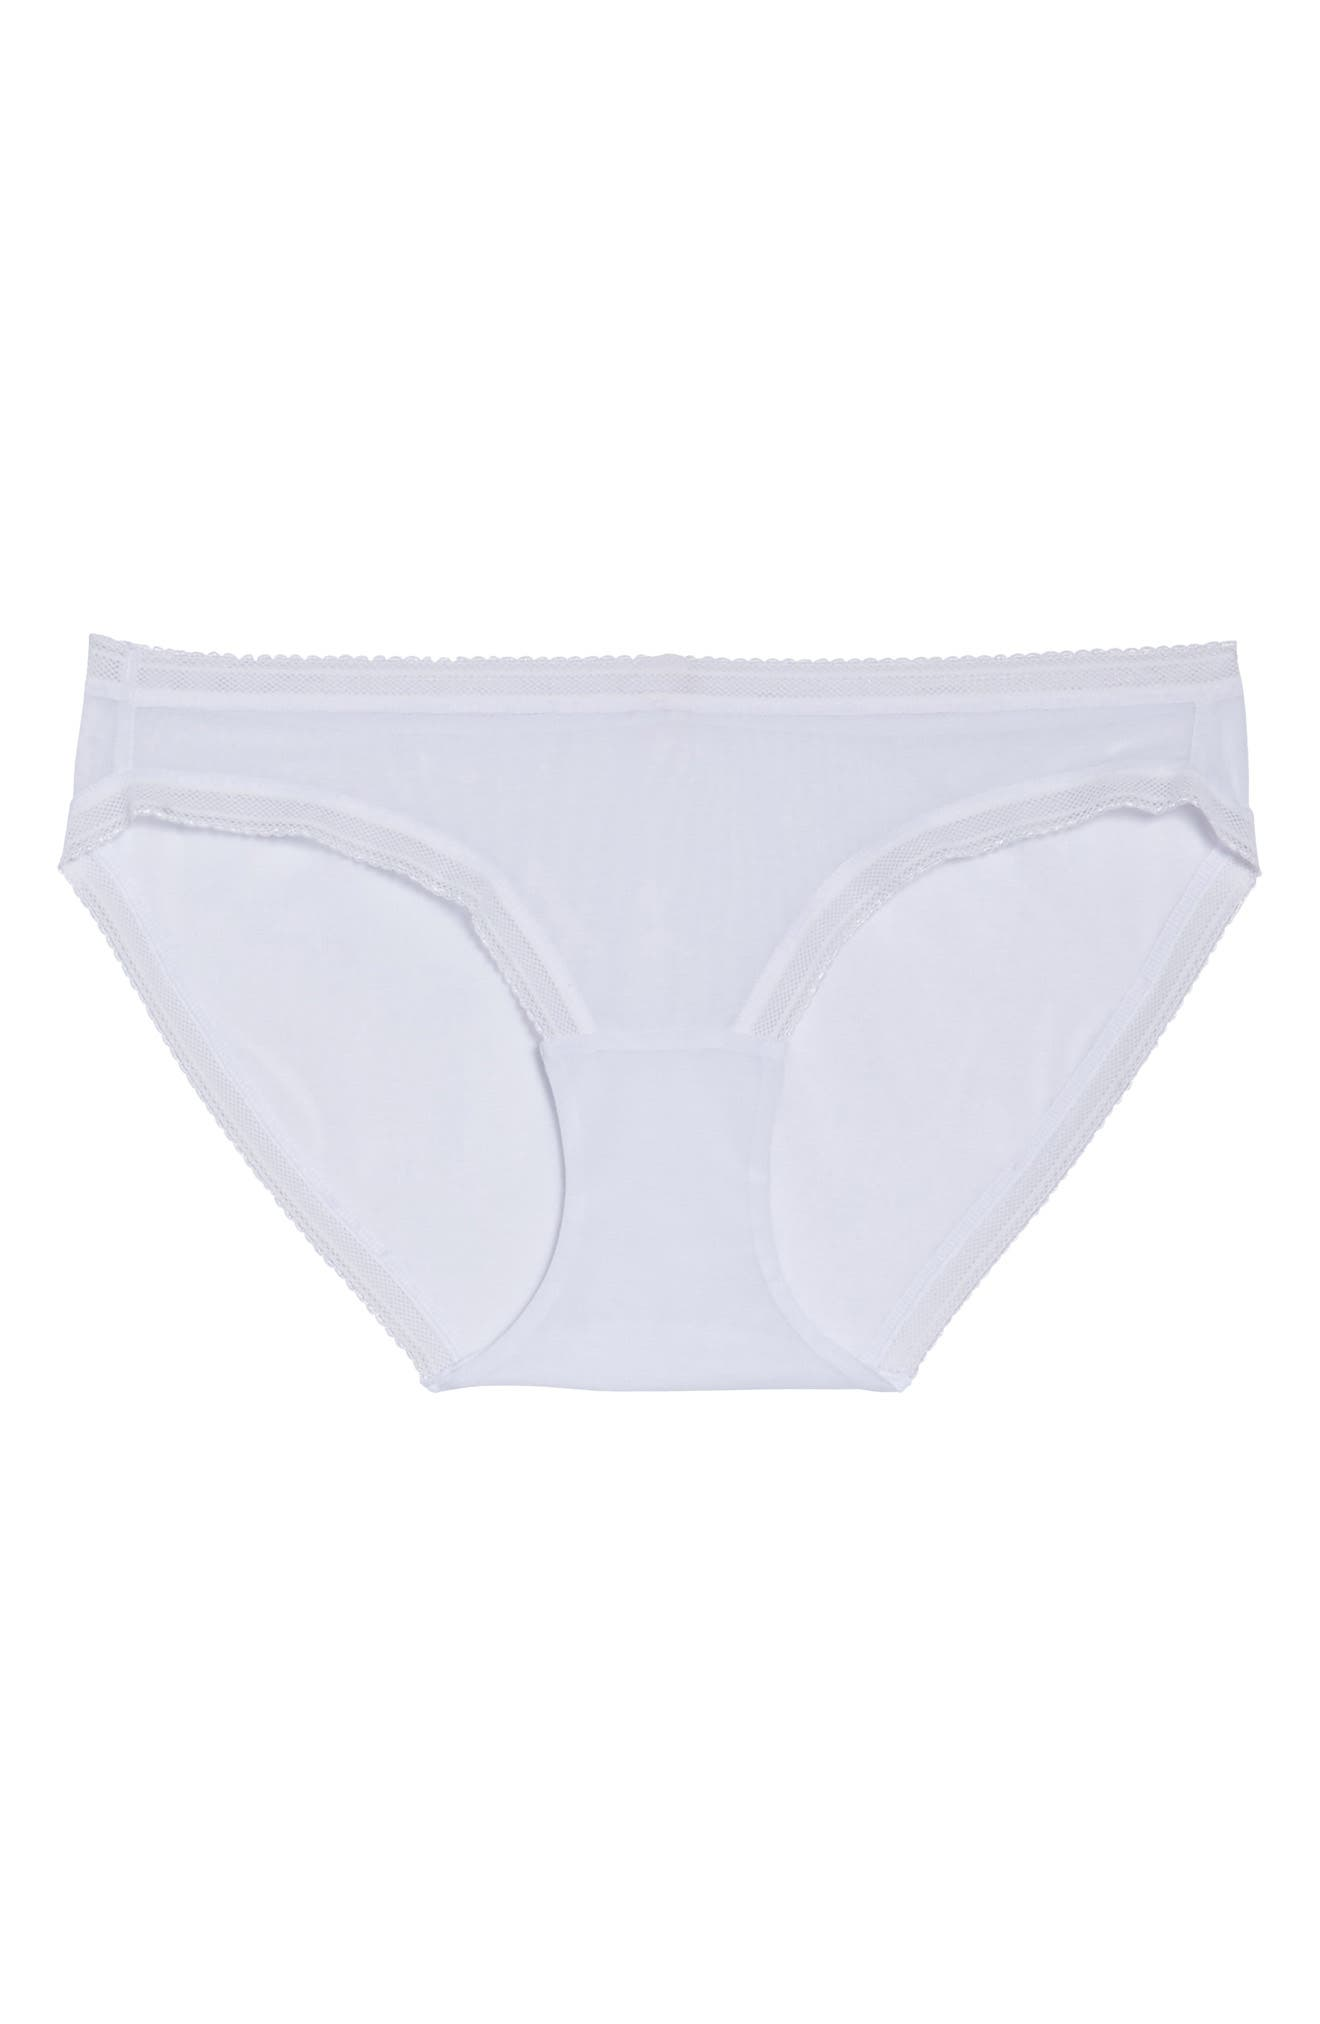 Mesh Bikini,                             Alternate thumbnail 8, color,                             White